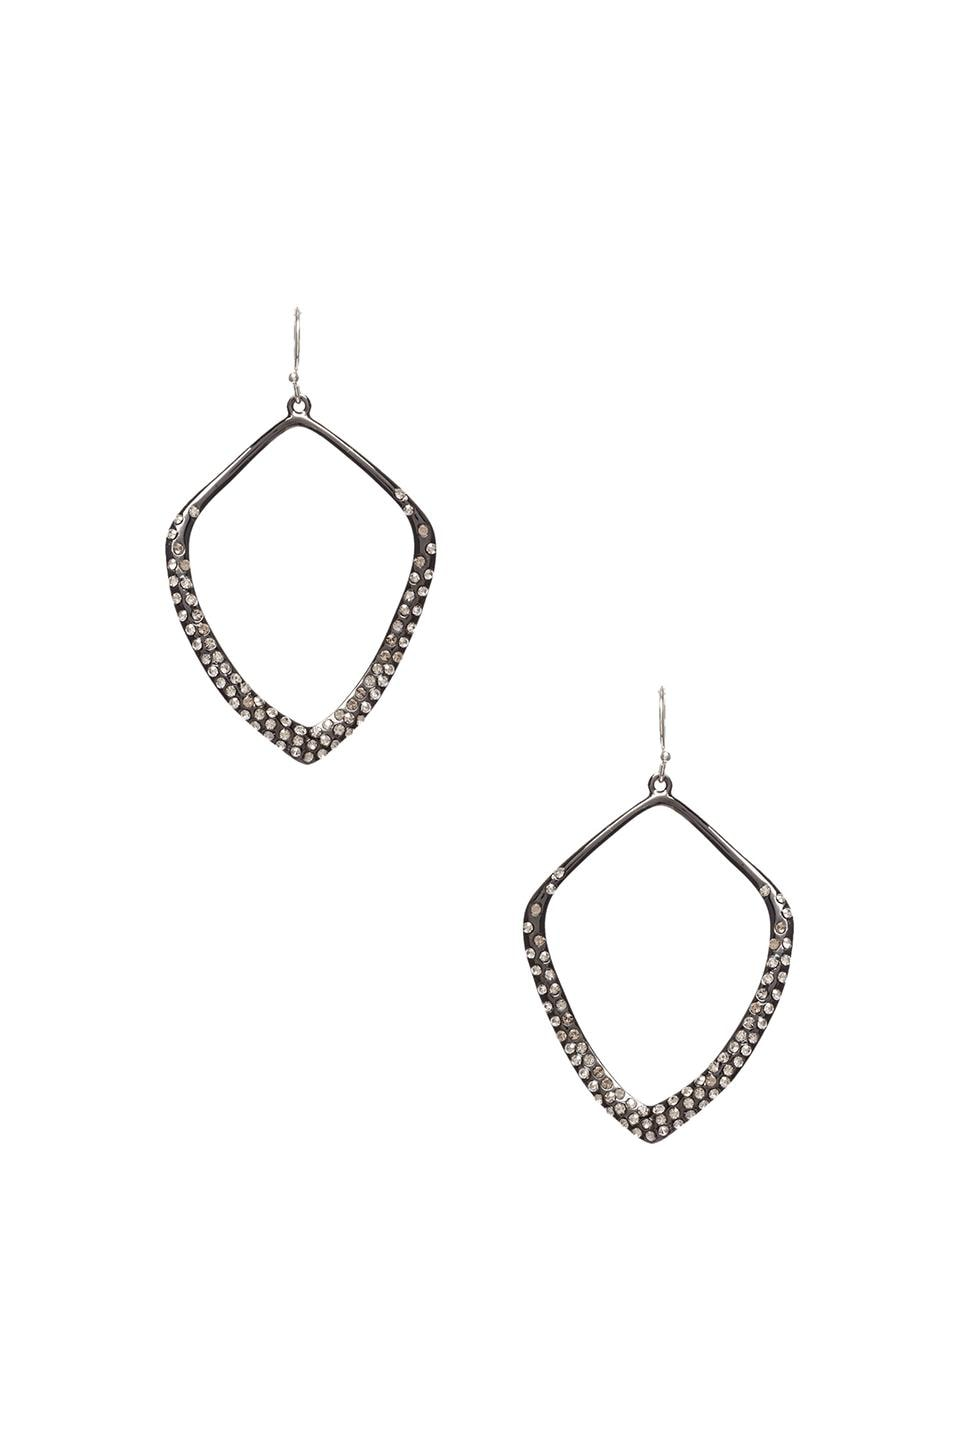 Alexis Bittar Pave Kite Orbit Earring in Gunmetal